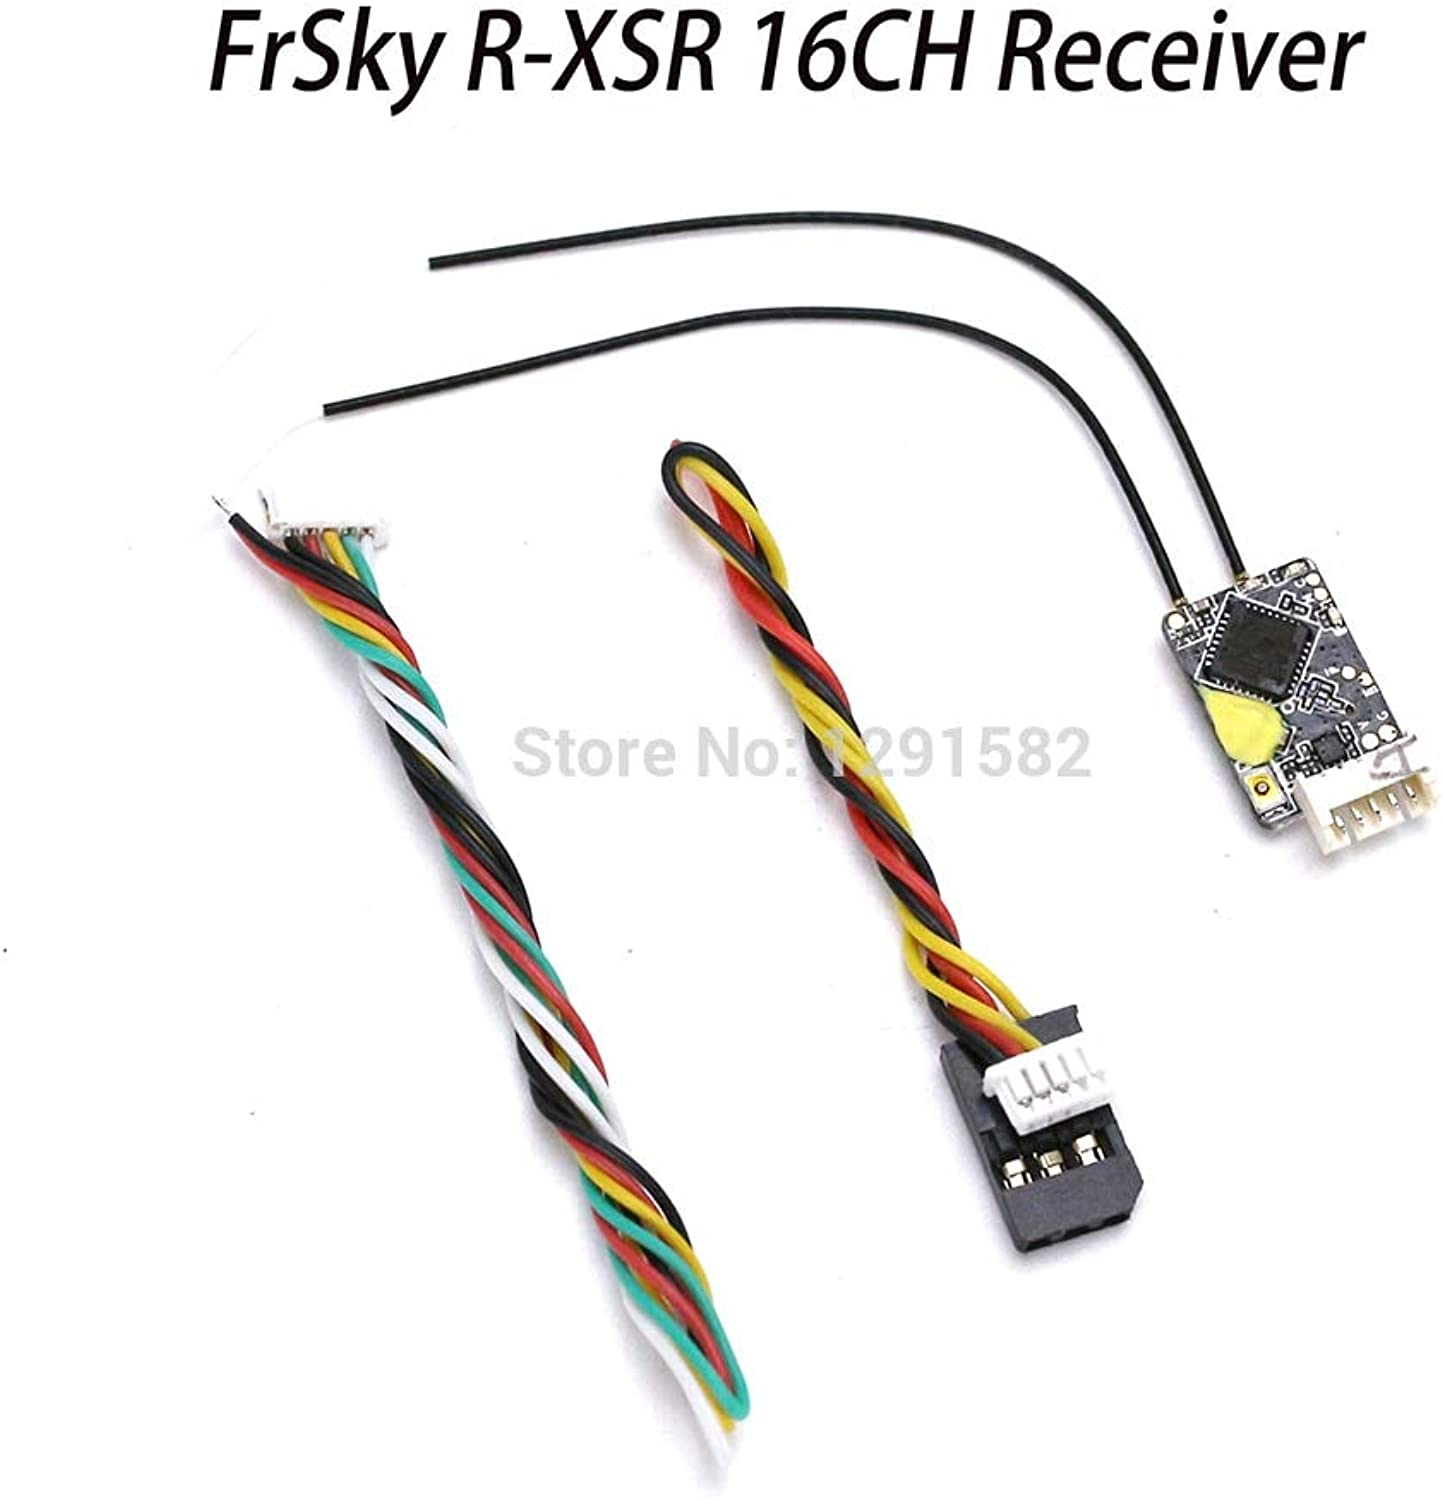 Laliva FrSky RXSR Ultra SBUS   CPPM Switchable D16 16CH Mini Redundancy Receiver RX 1.5g for RC Transmitter TX Drone Models Quadcopter